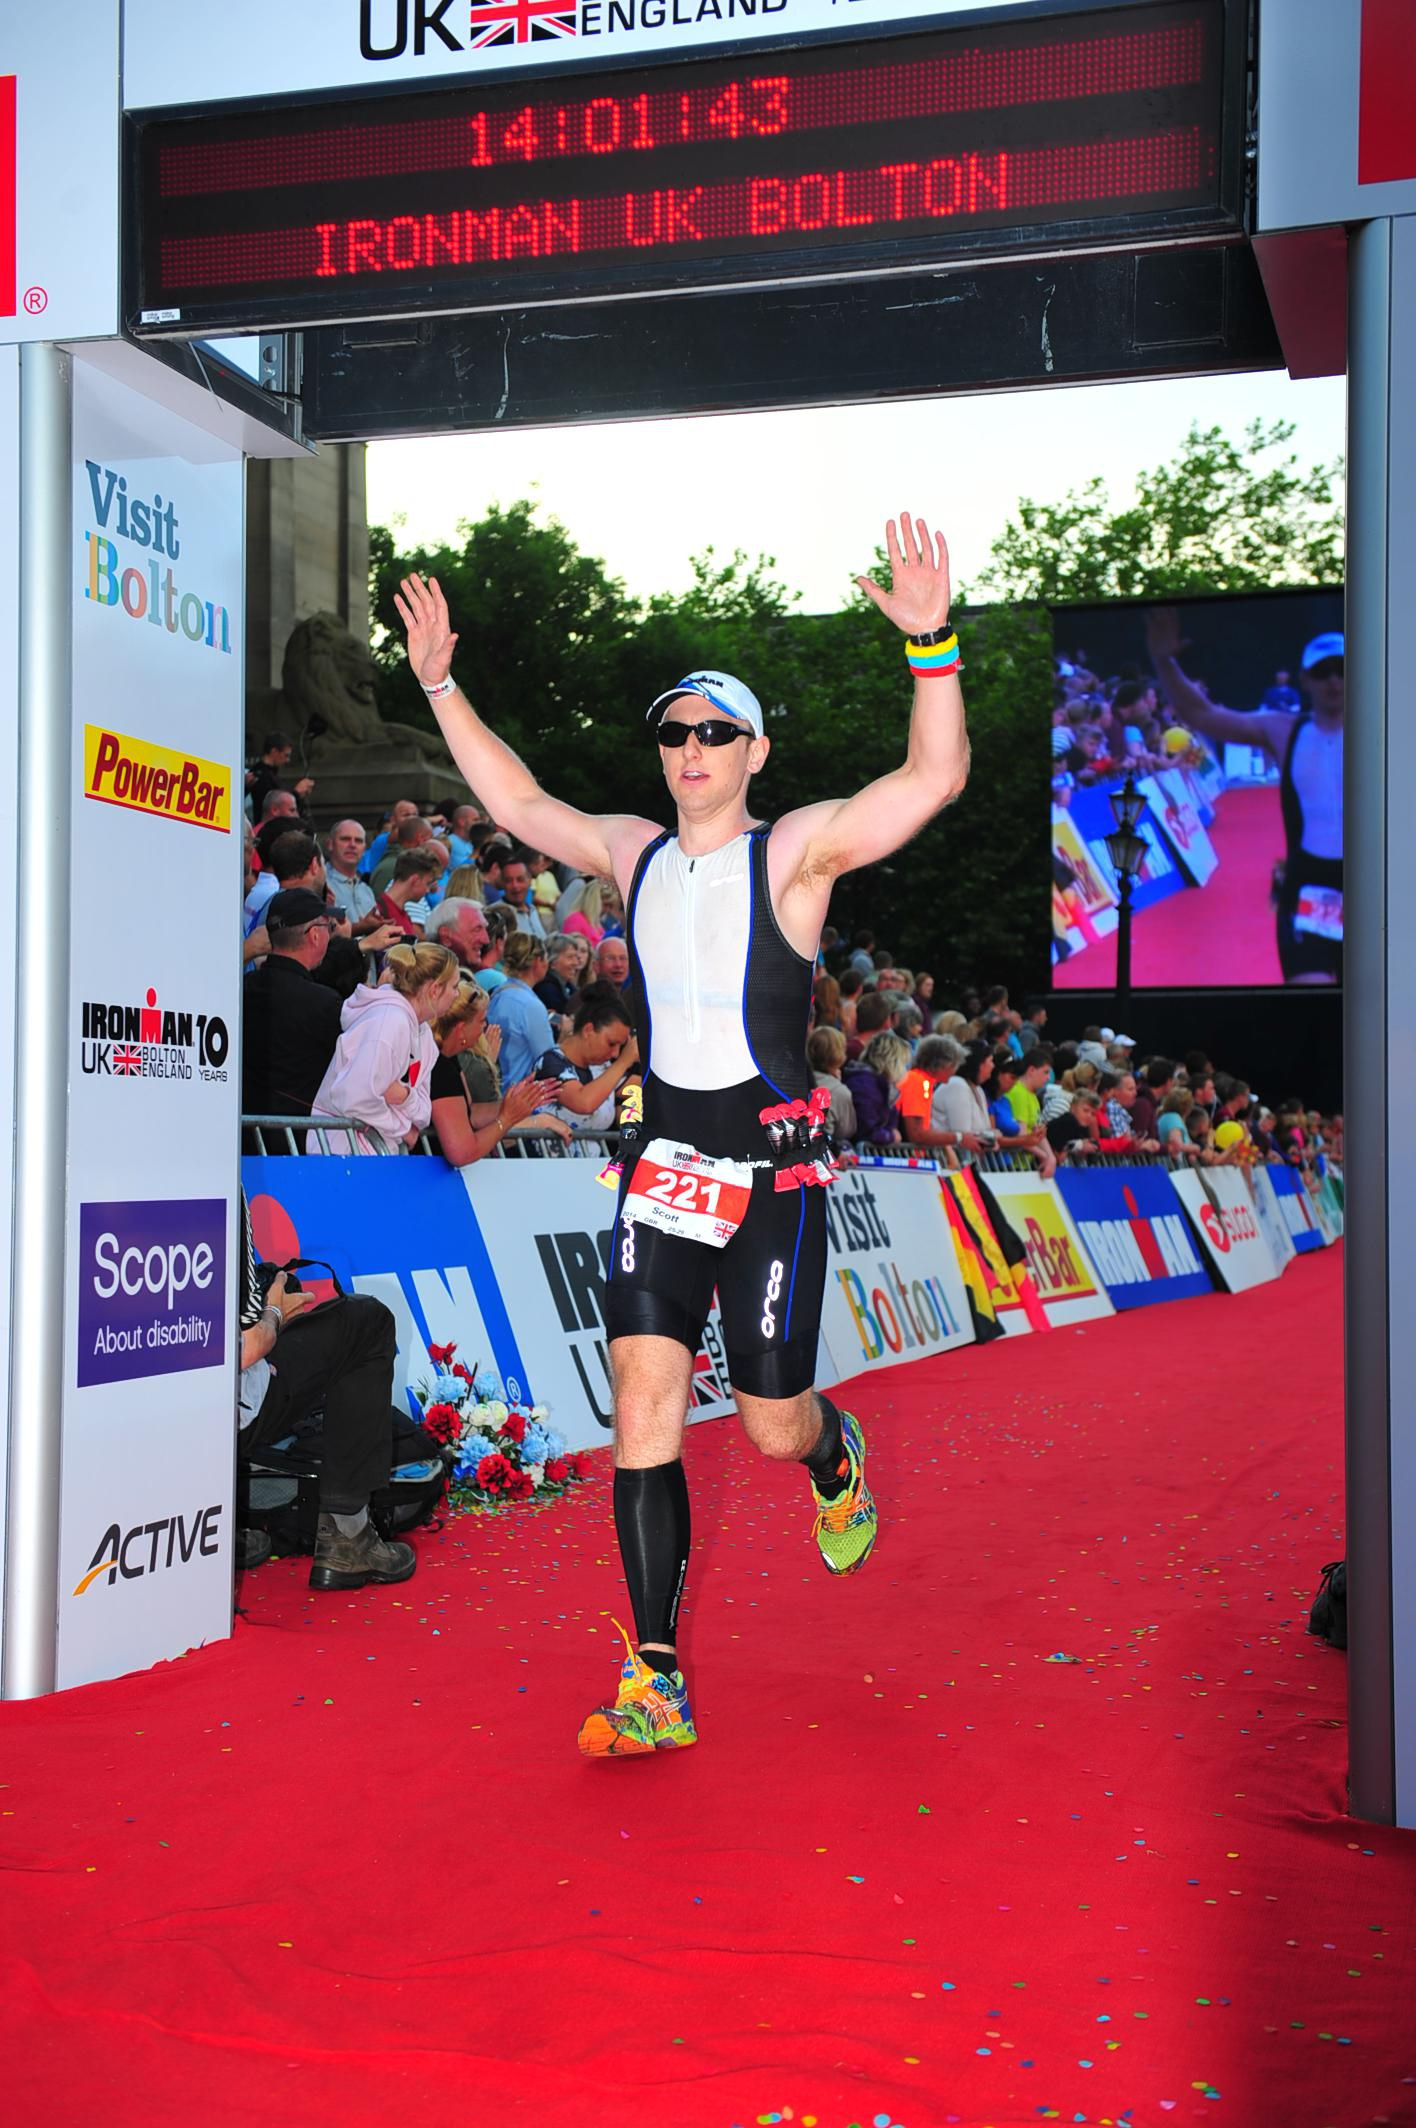 Chiropractor Scott Benham from Chiro Health in Lexden Colchester completes IronmanUK traithlon 2014 in 14 hours